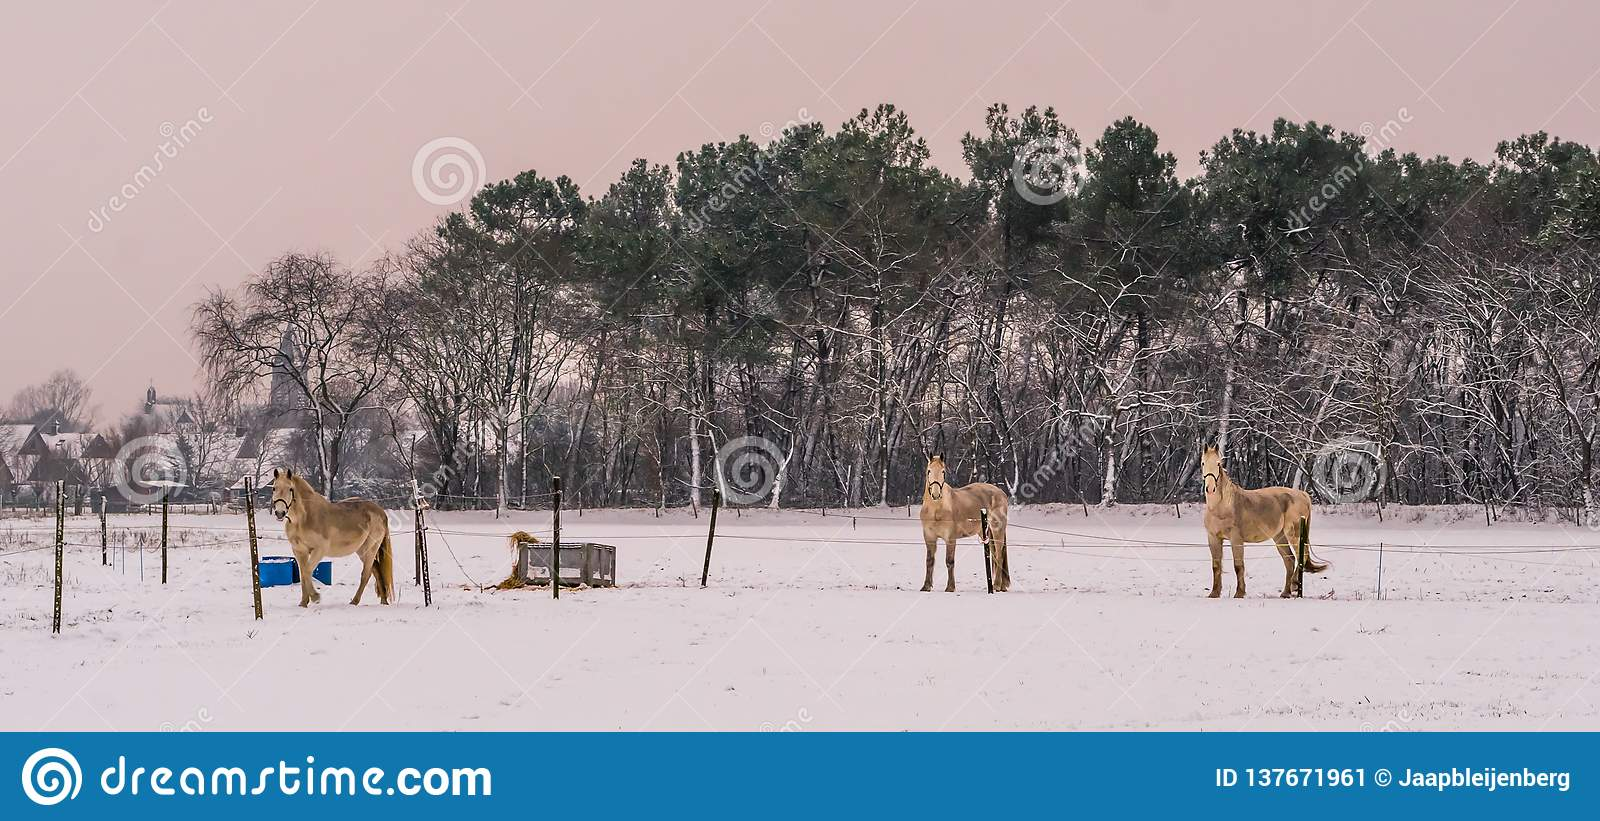 Light brown horses standing in the pasture and looking at the camera during winter season, white snowy meadow, beautiful nature